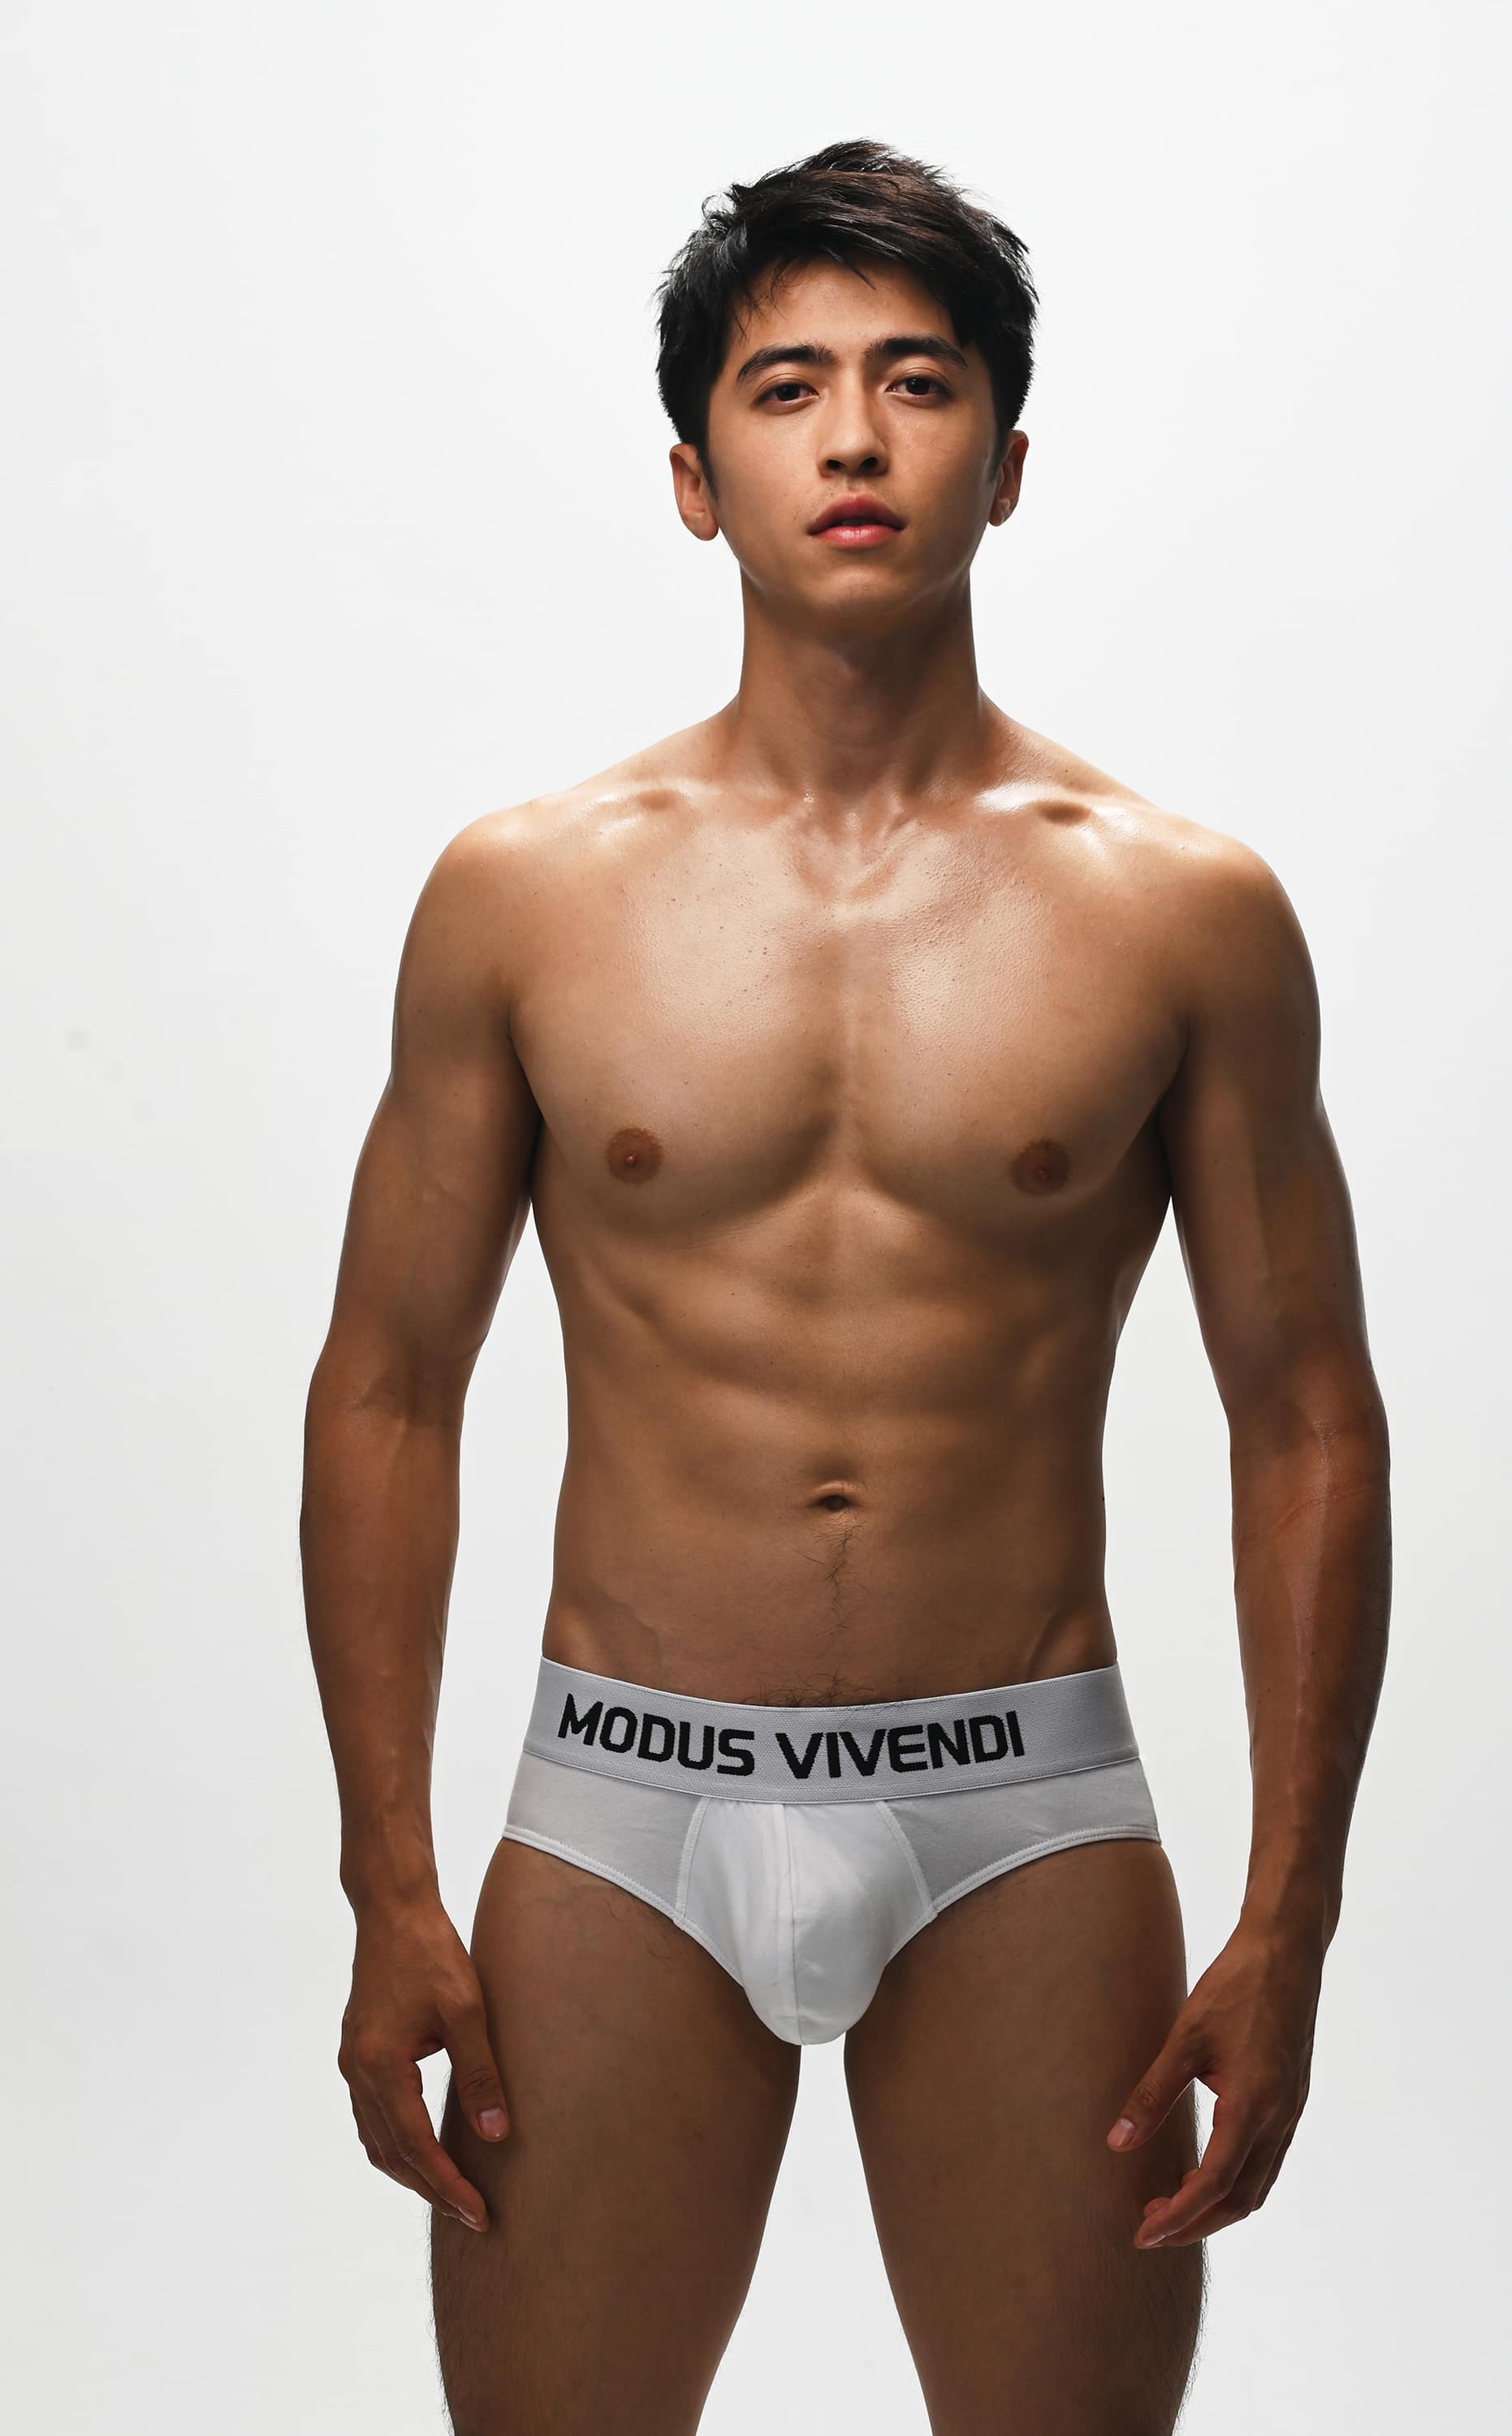 Modus Vivendi - Interview with our model Chenghao